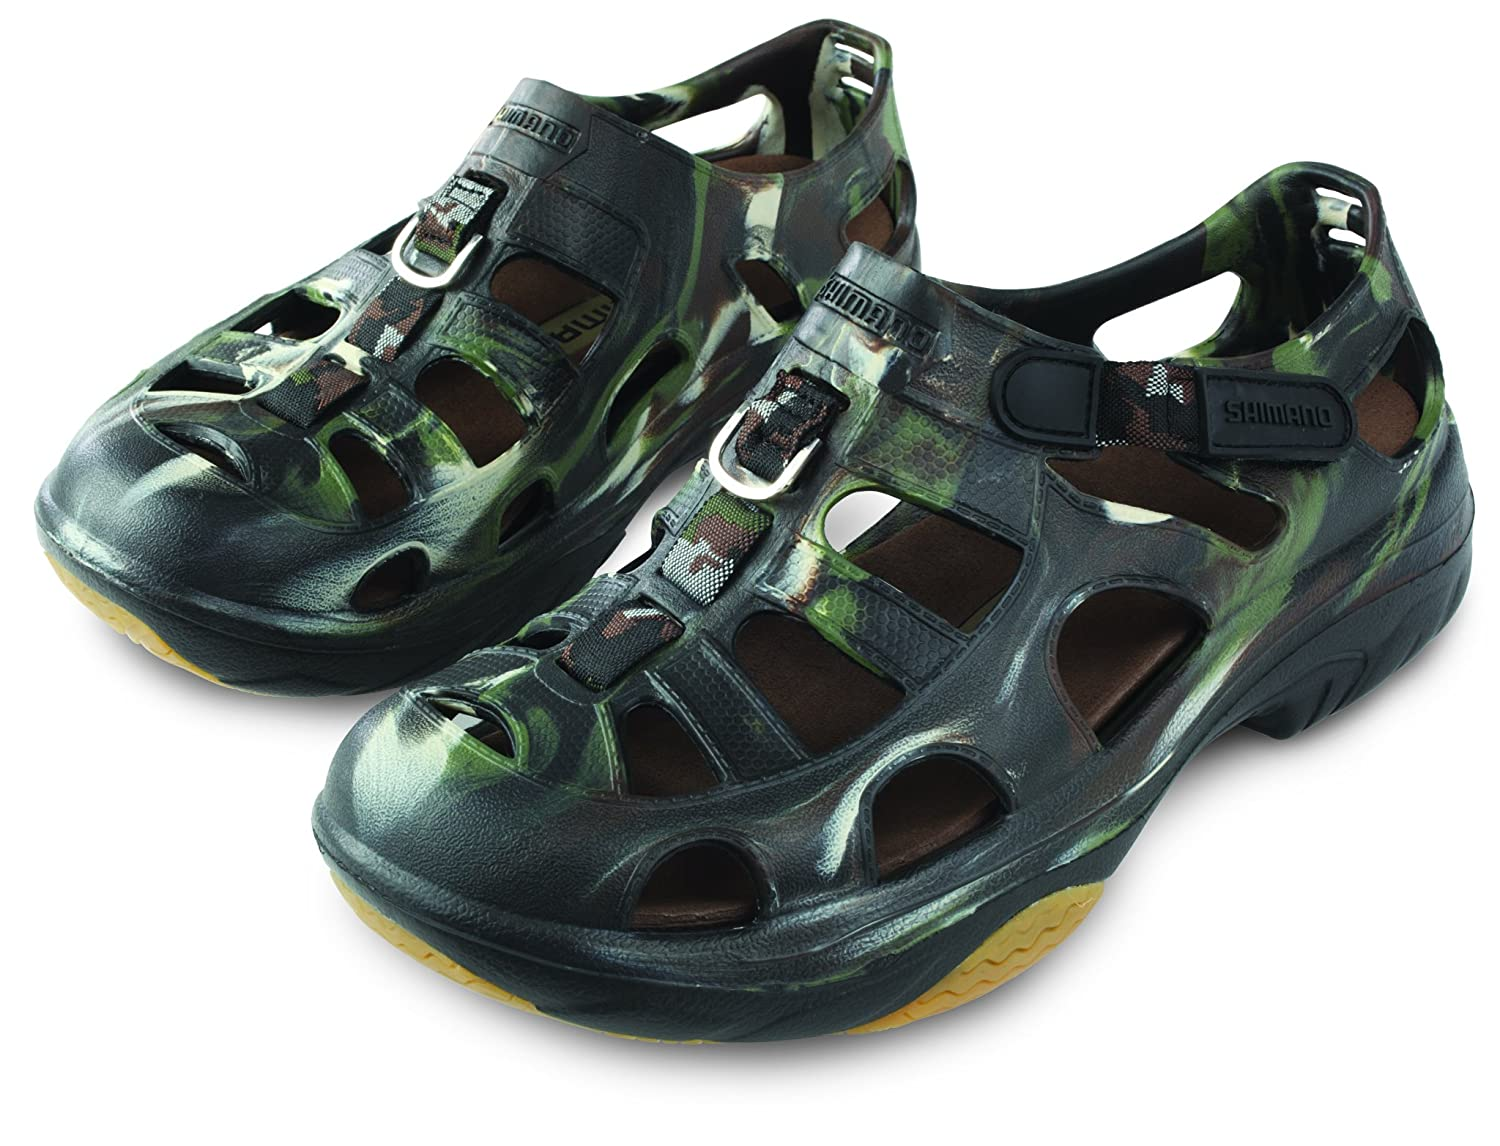 Shimano EVAIR MARINE Fishing Shoes B005H0MWIG Size 06|Camo